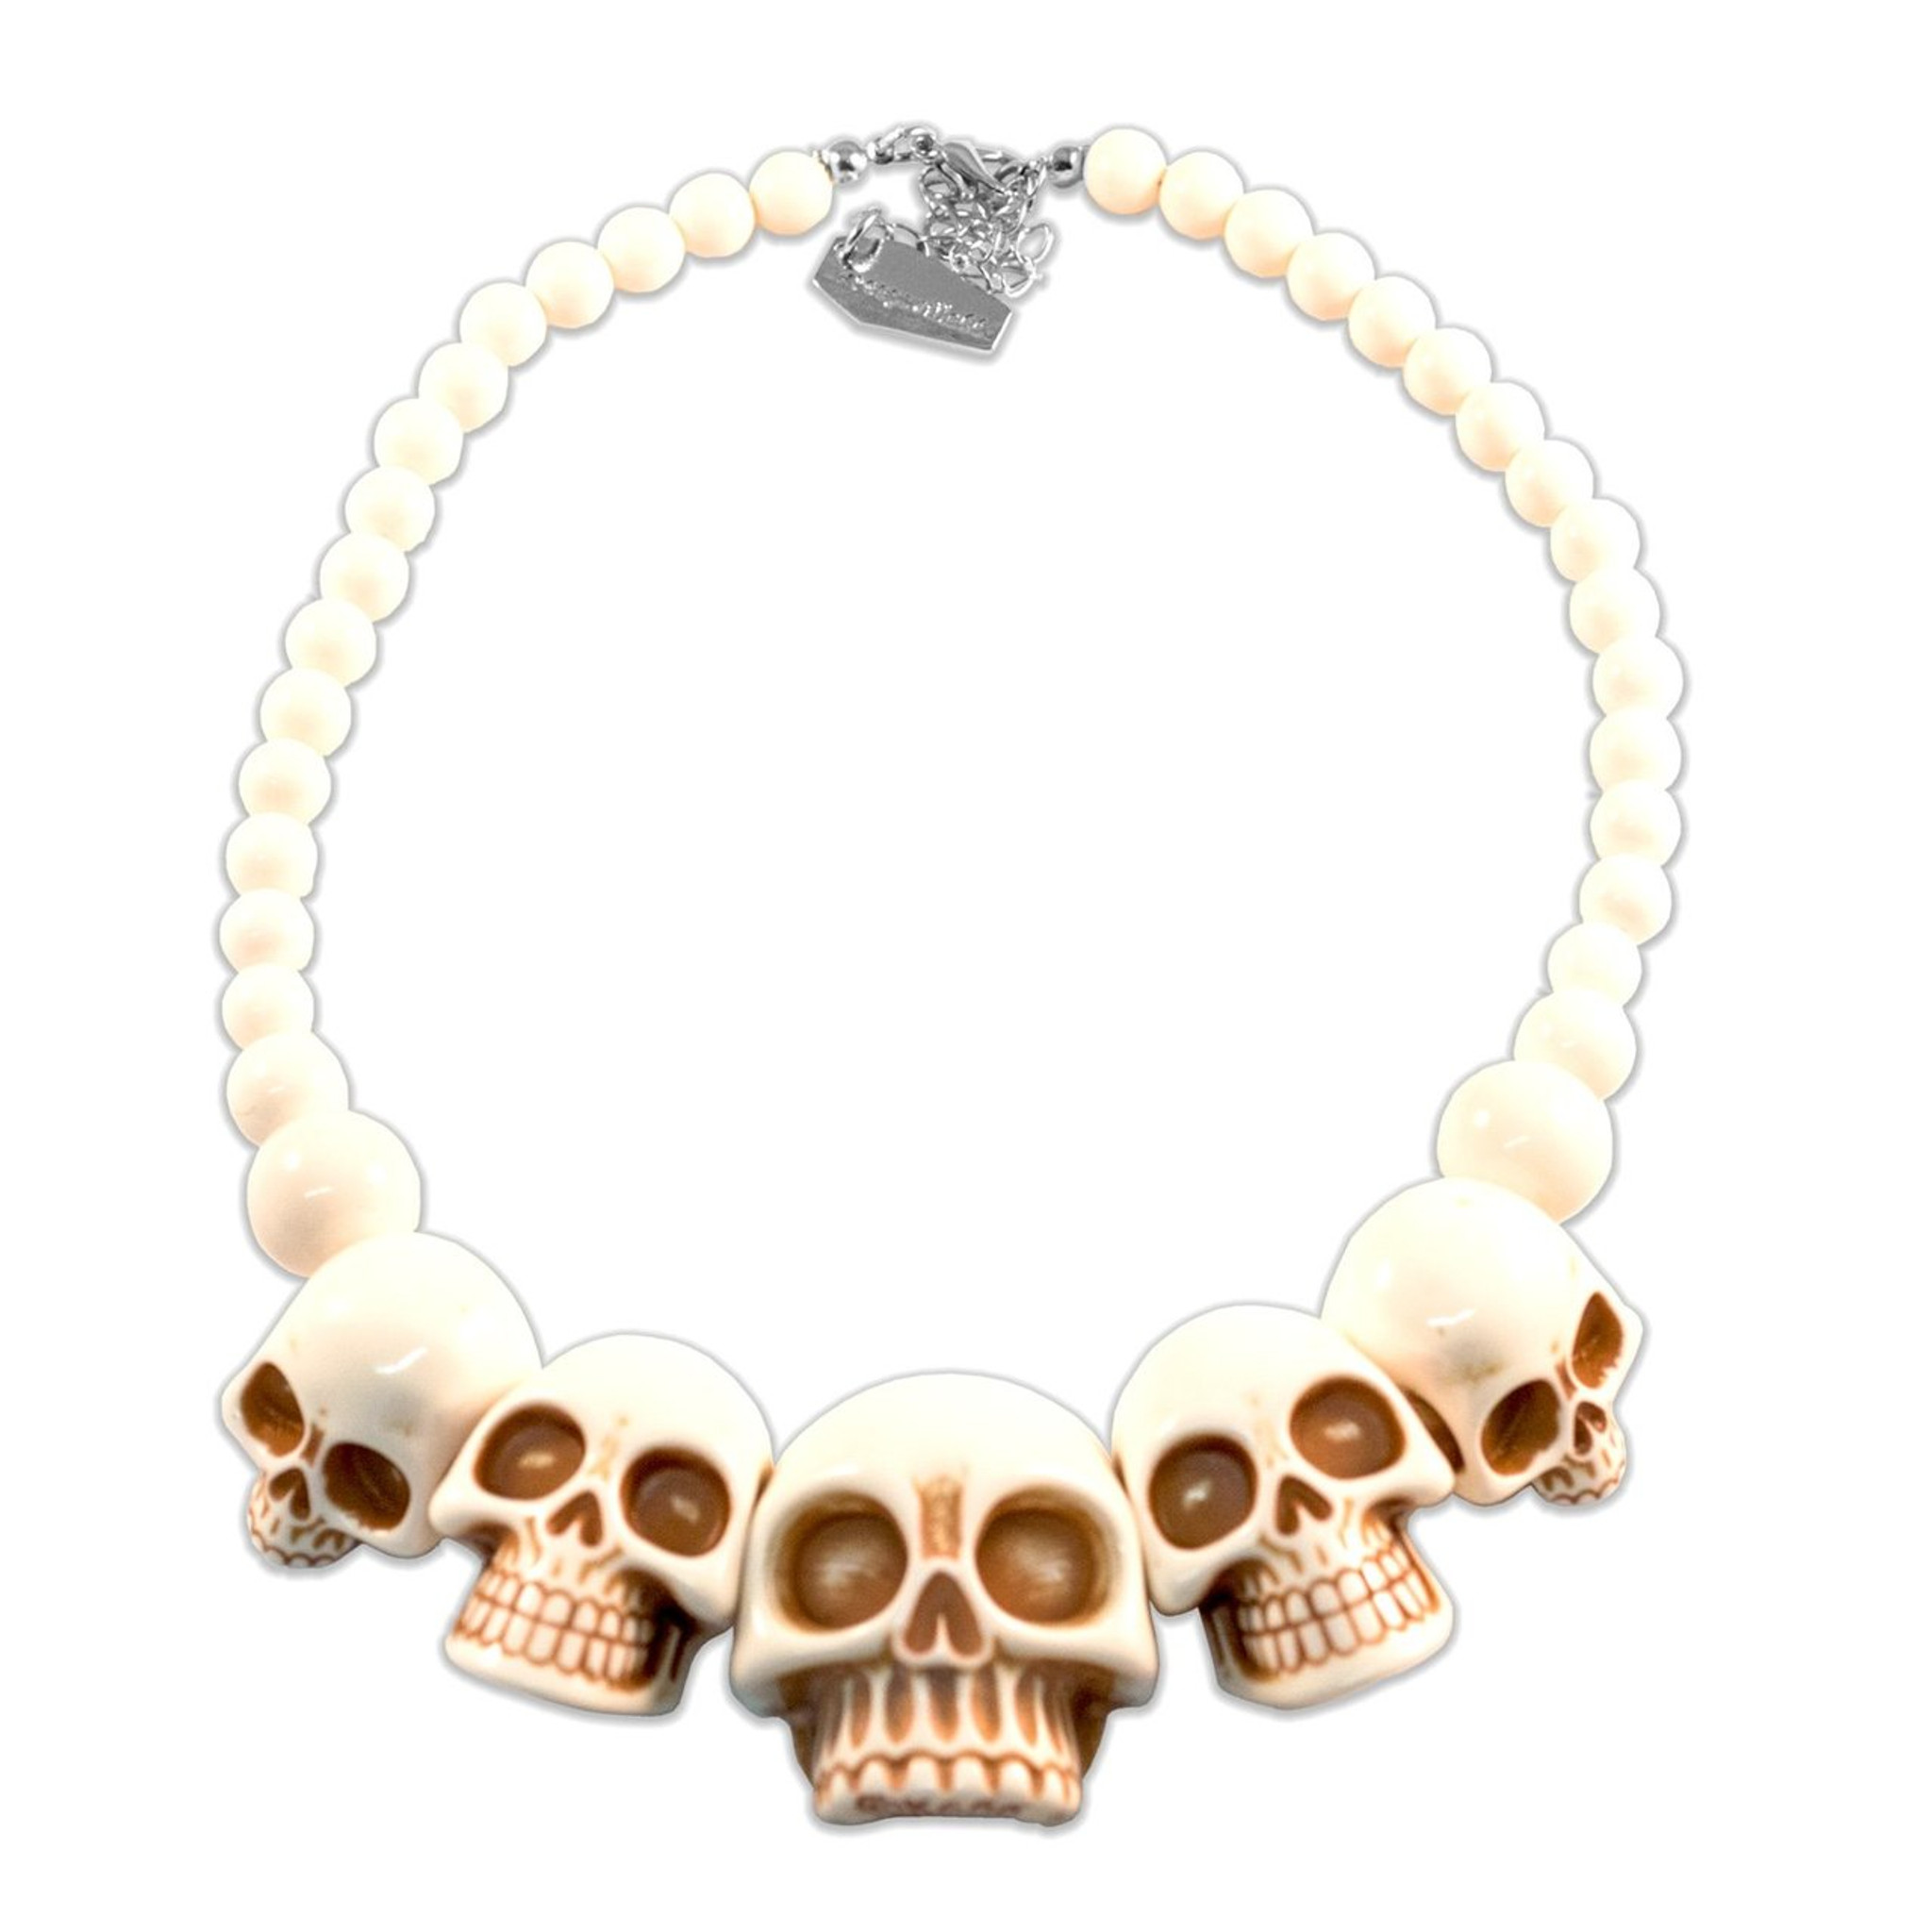 White skull necklace